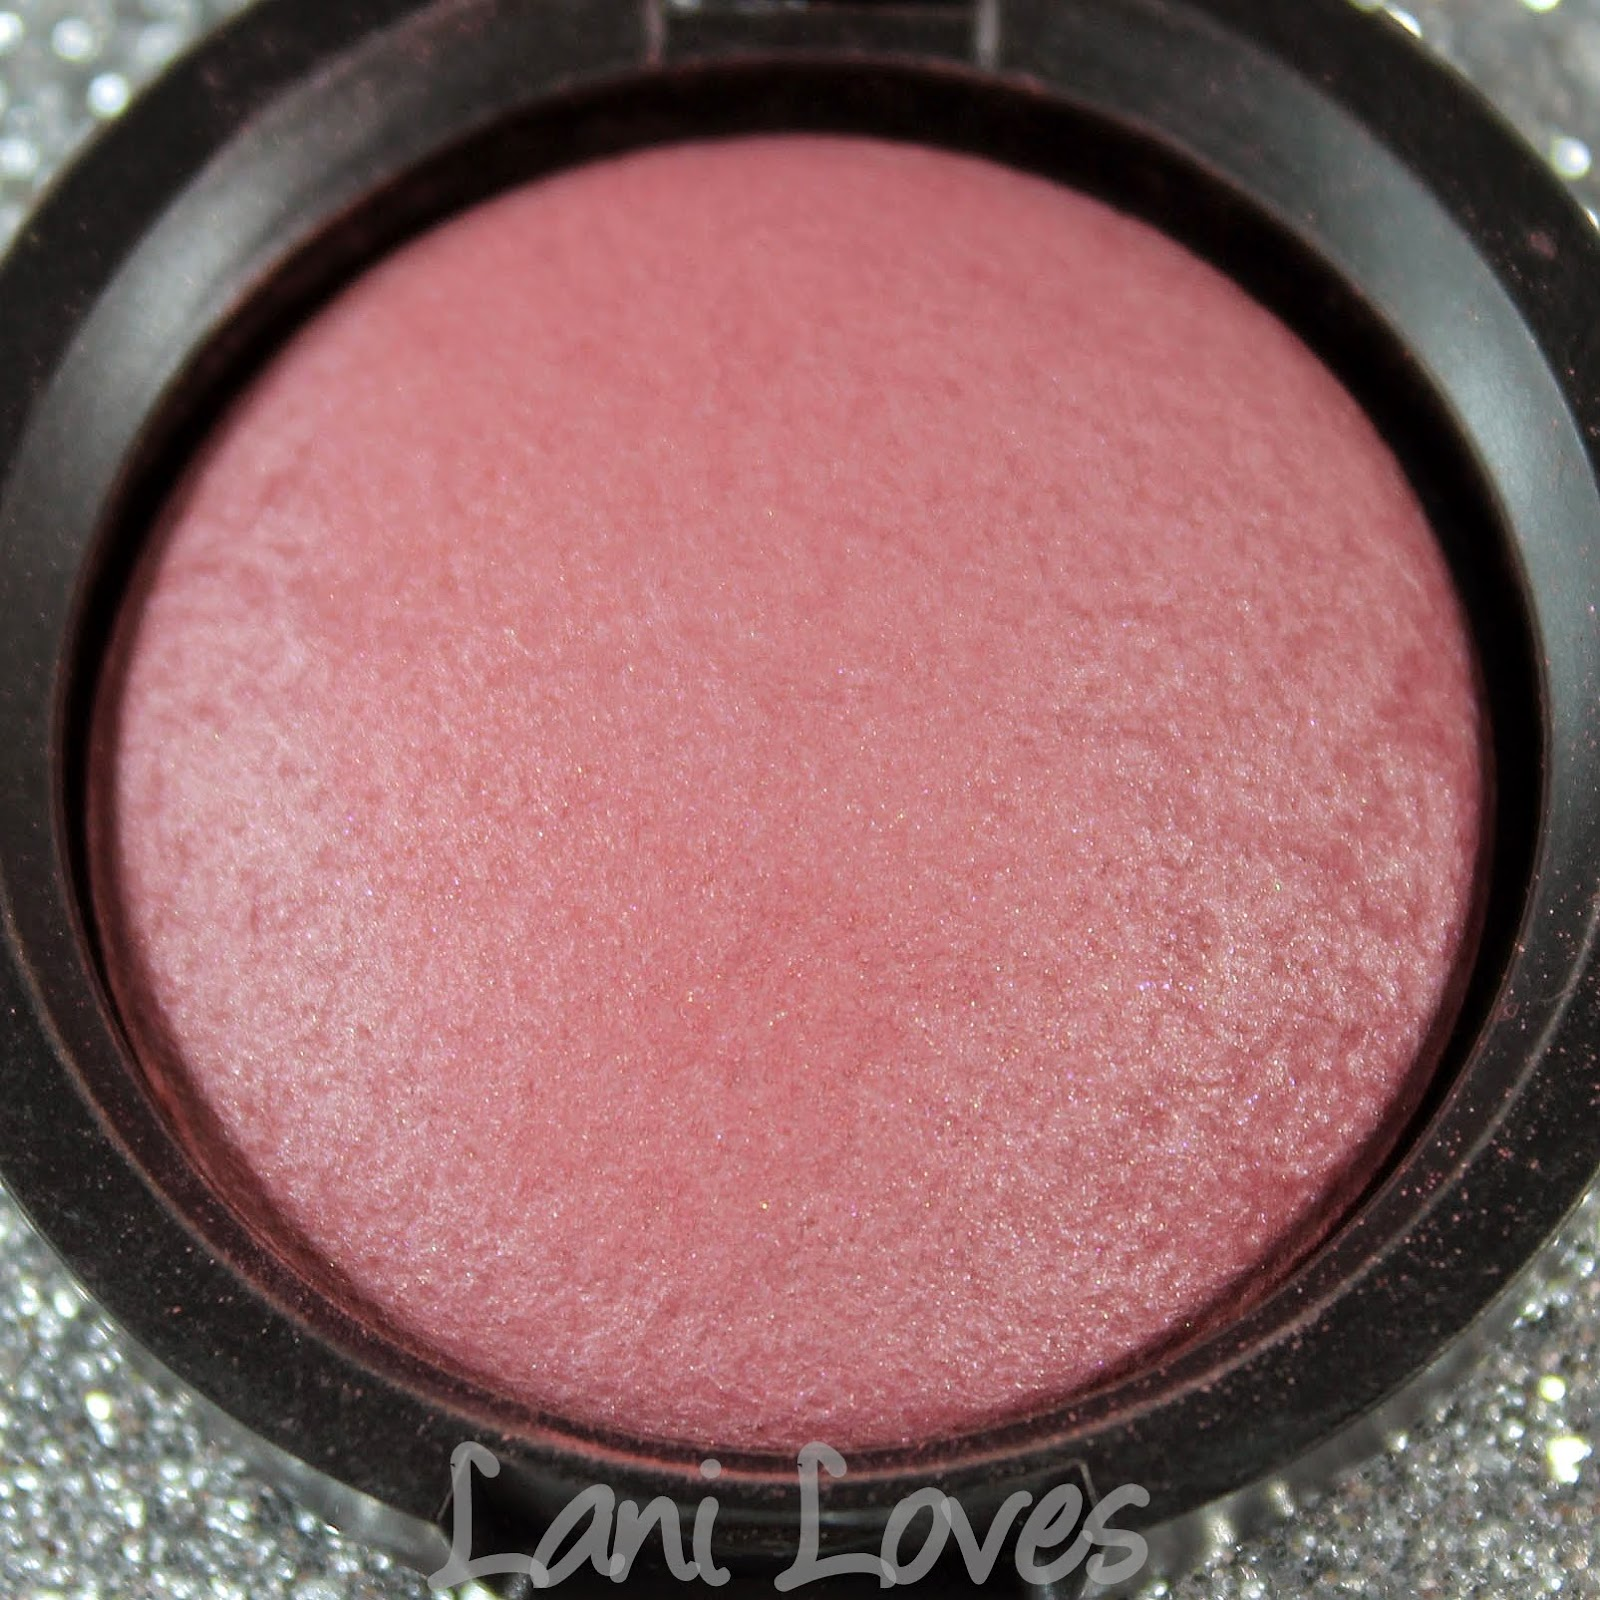 Laura Gellar Baked Blush - Maui Swatches & Review